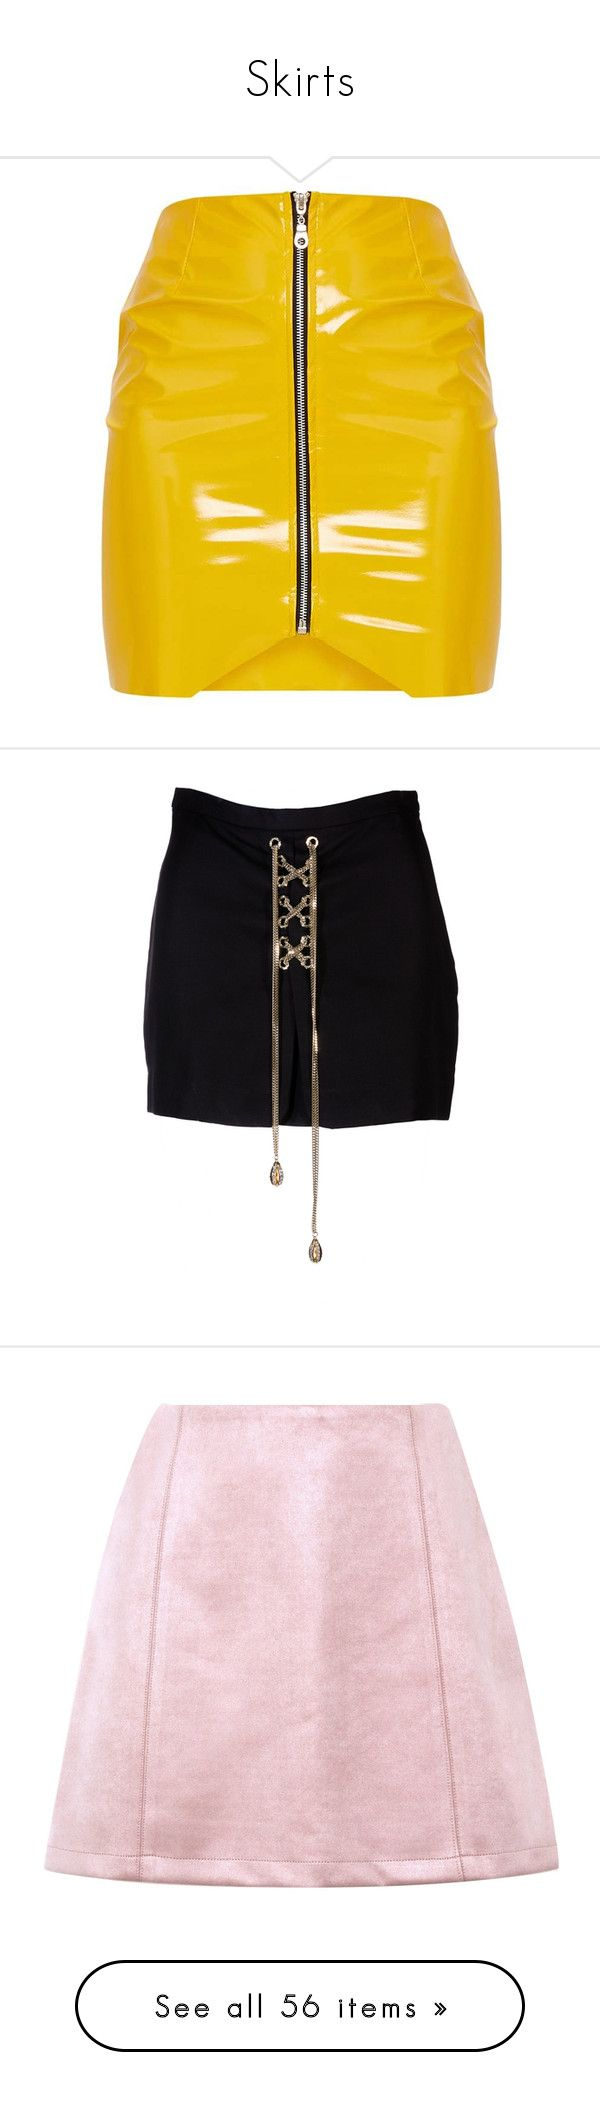 """""""Skirts"""" by fashionfreak4everr ❤ liked on Polyvore featuring skirts, mini skirts, front zipper skirt, vinyl mini skirt, vinyl skirt, short skirt, yellow skirt, bottoms, short mini skirts and dsquared2"""